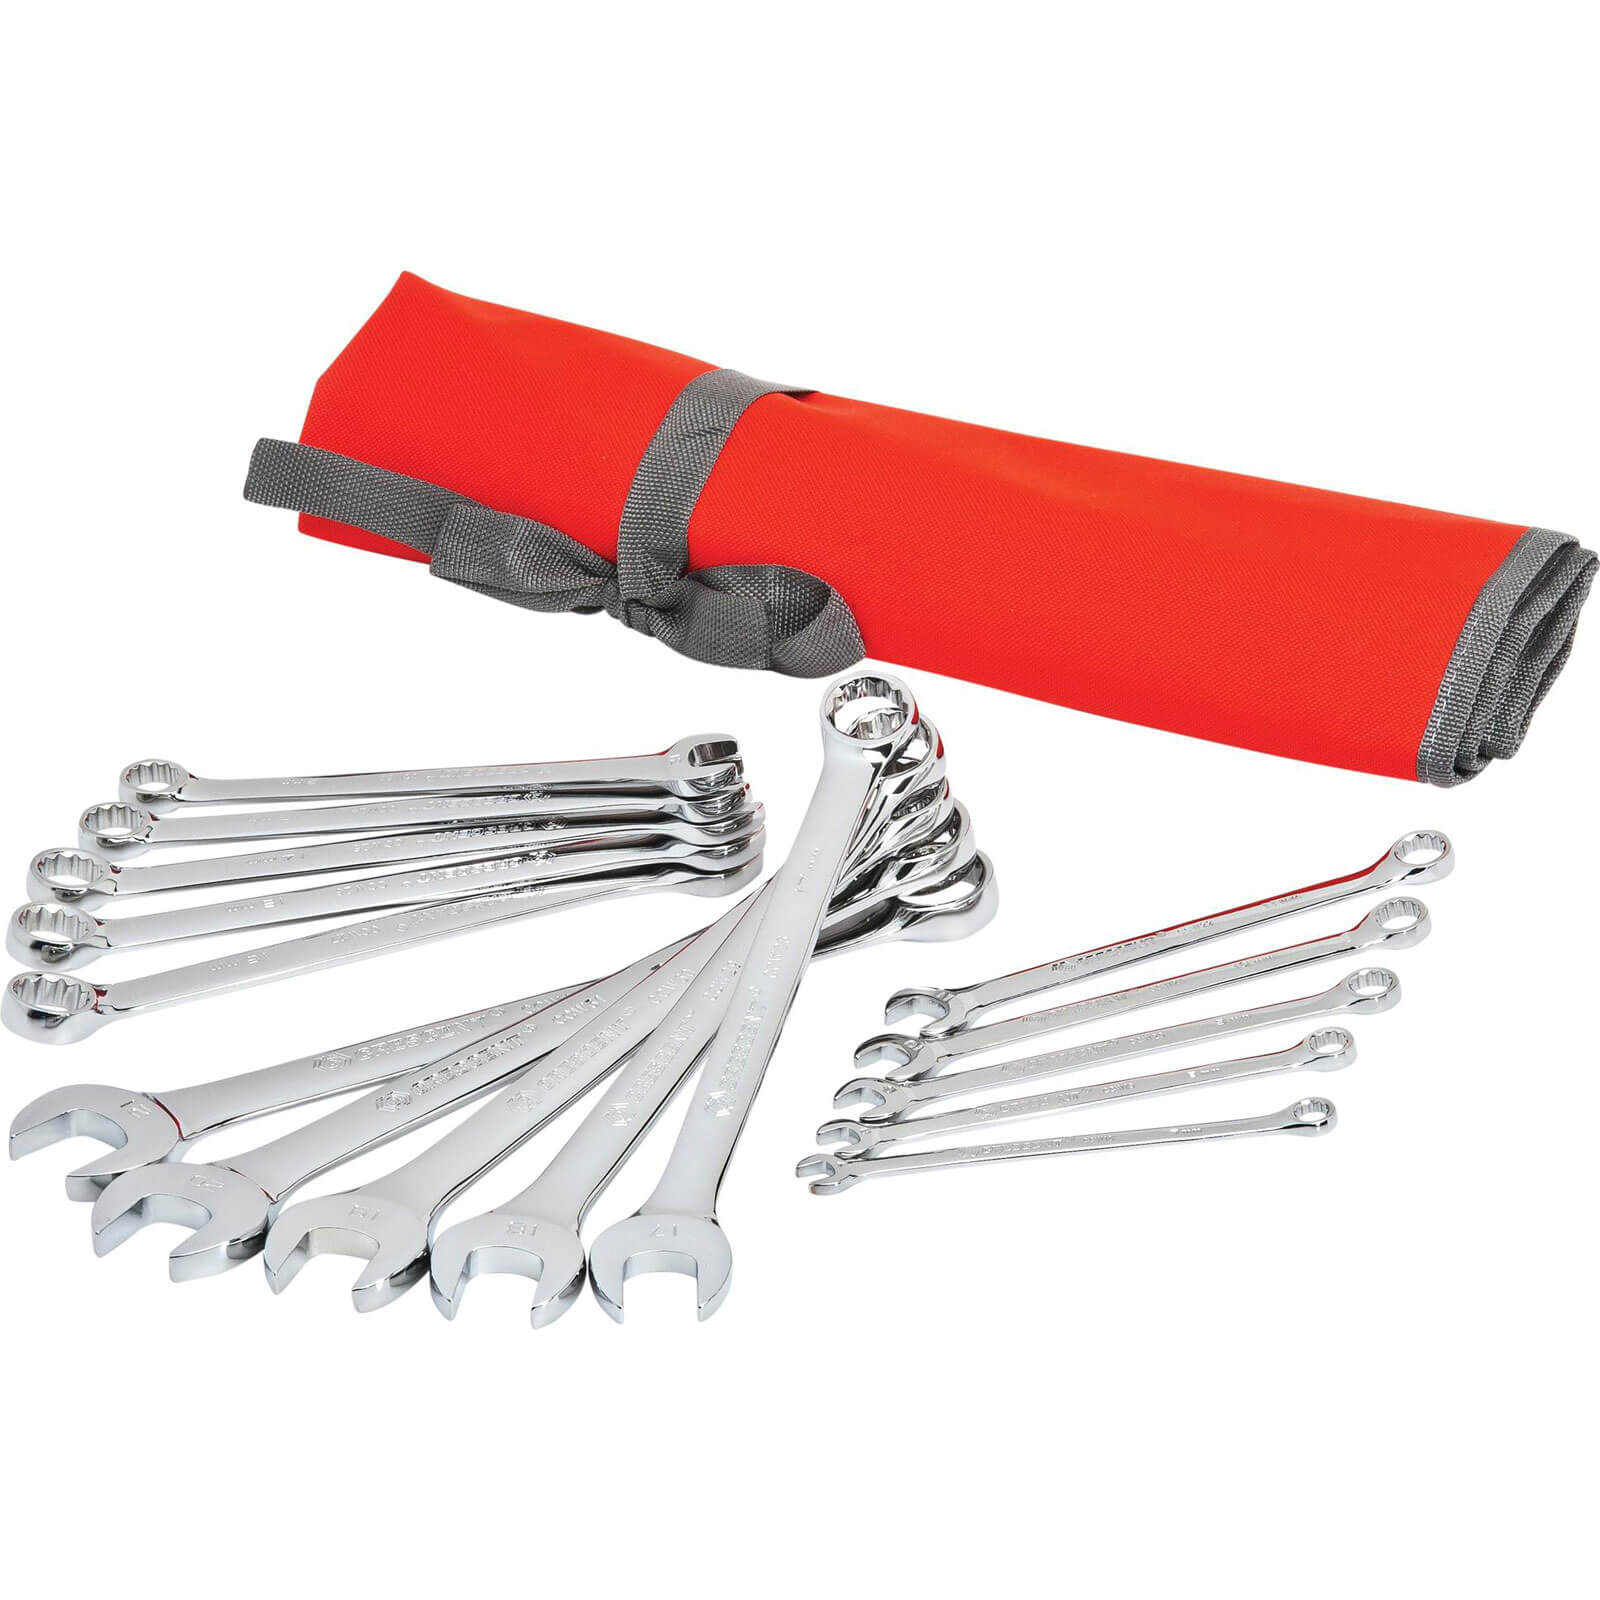 Image of Crescent 15 Piece Combination Spanner Set